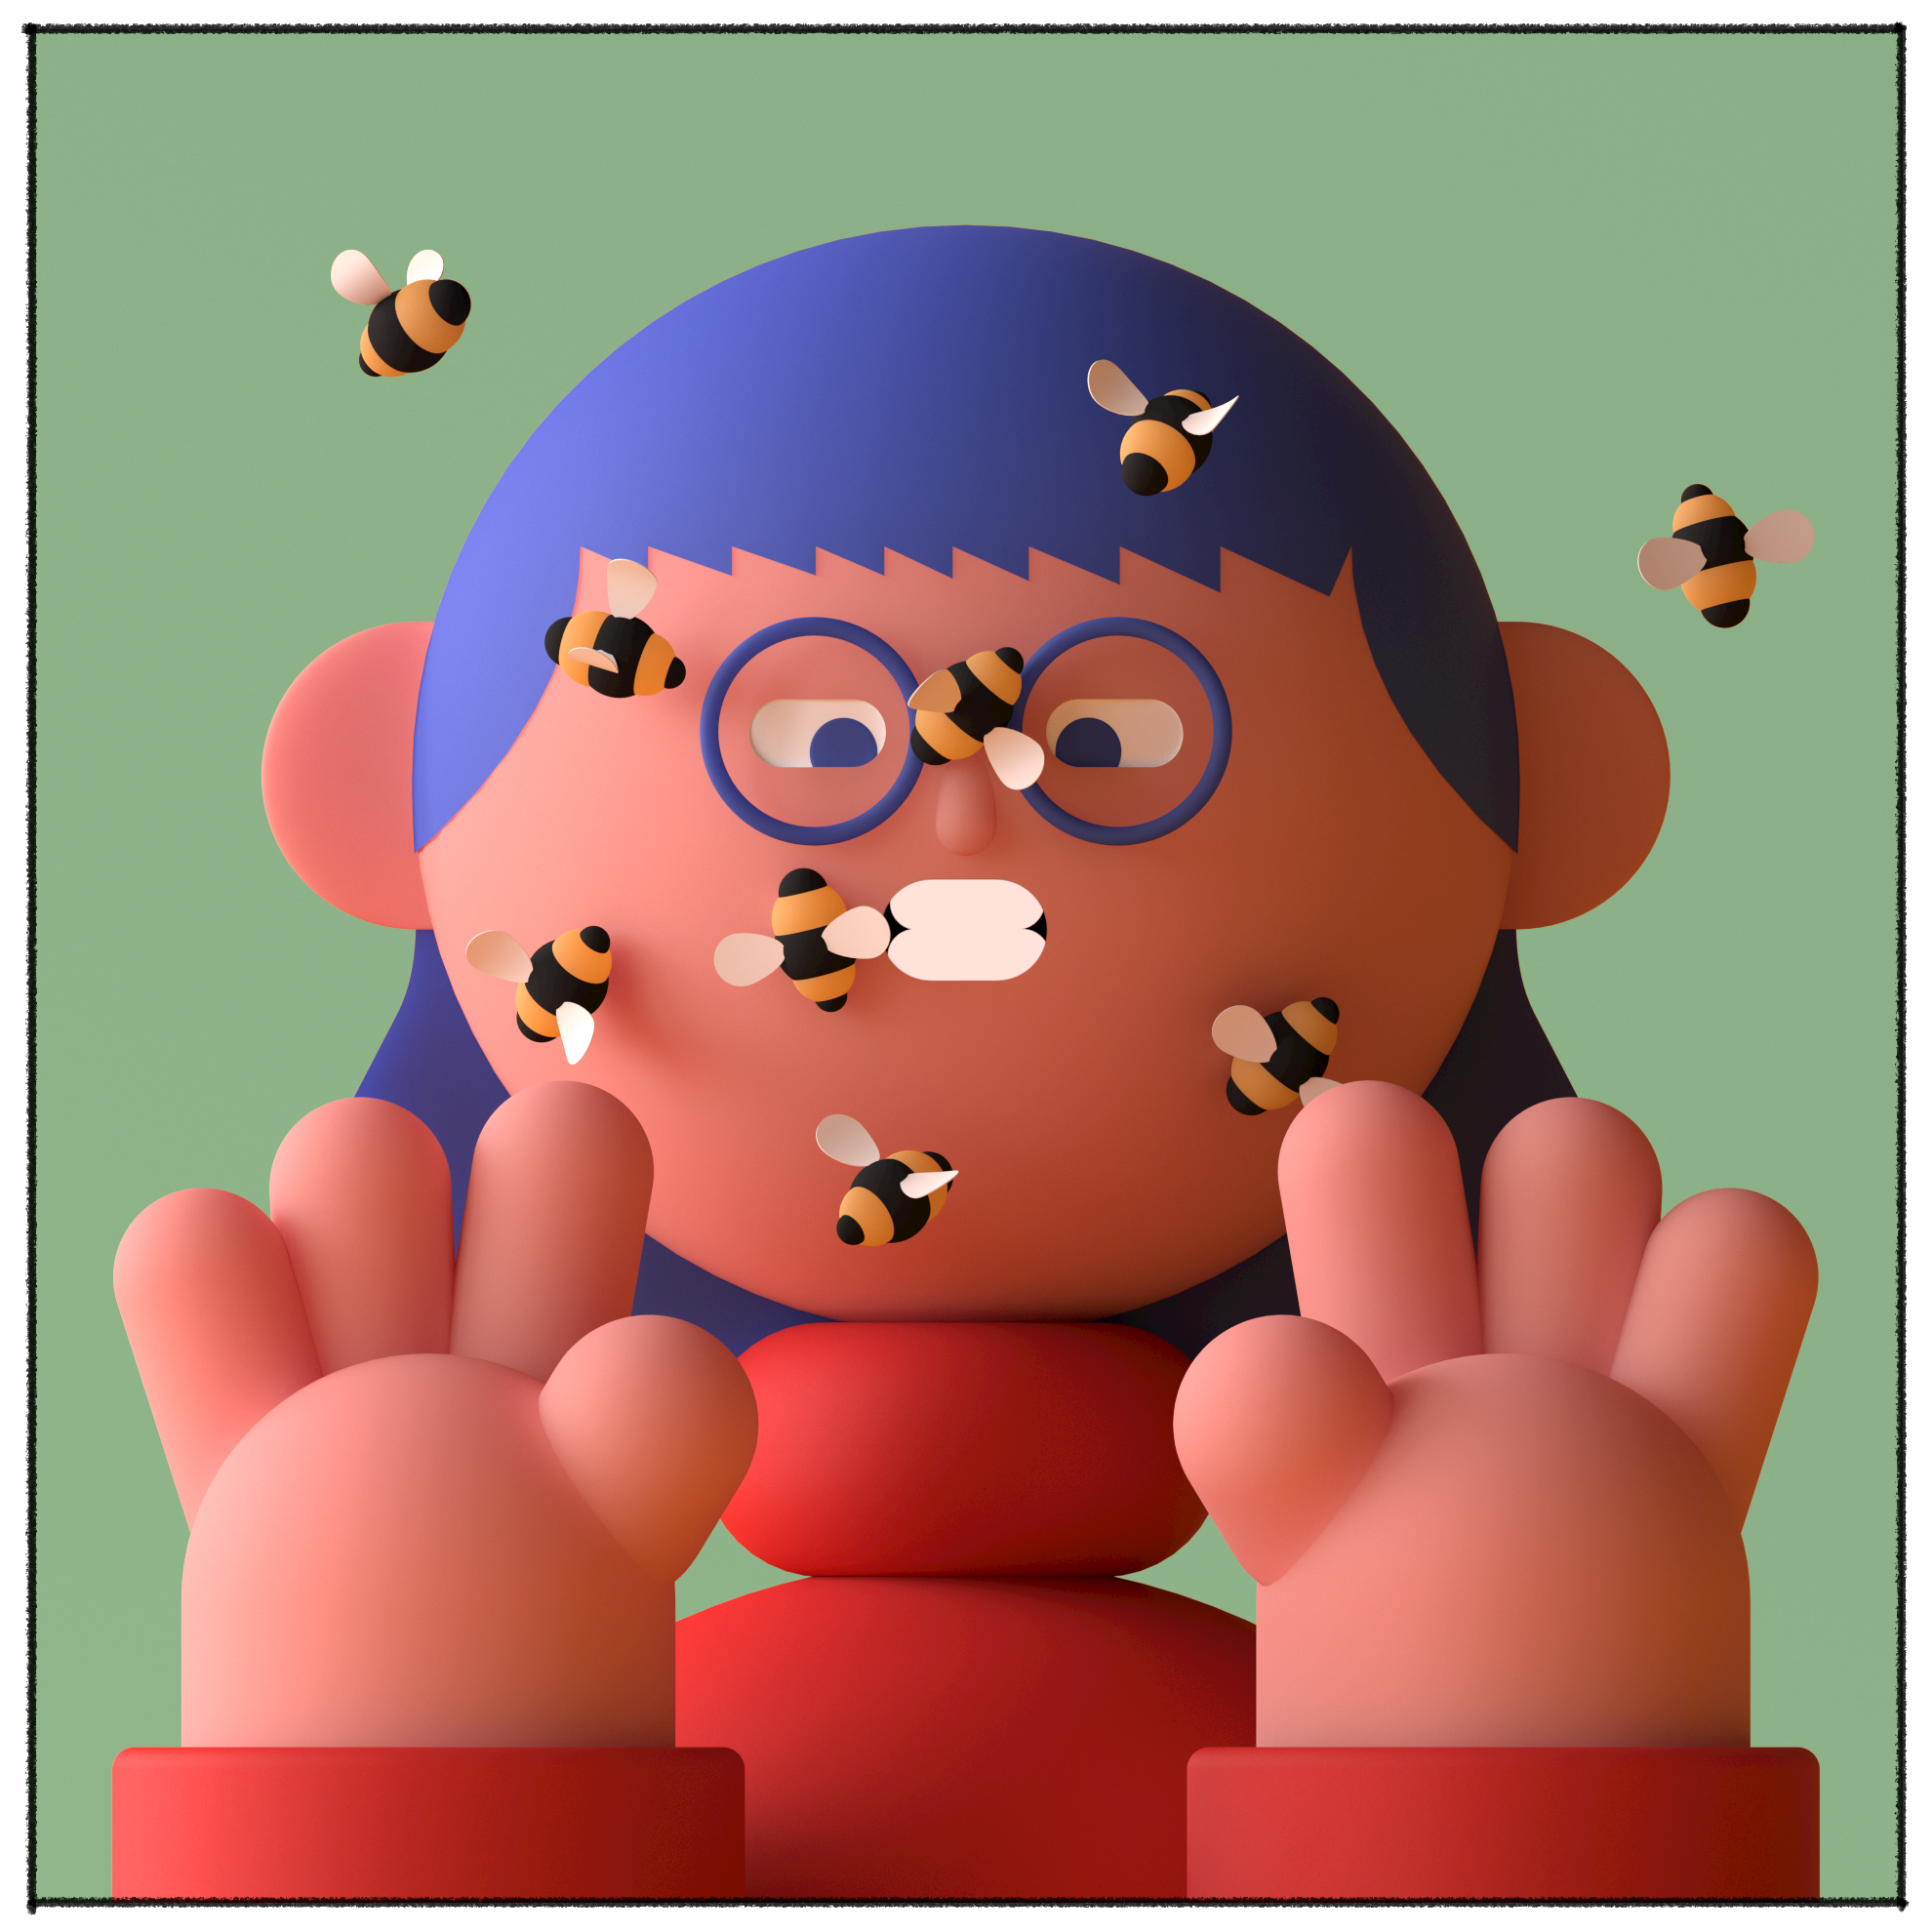 Bees-On-her-Face02.png